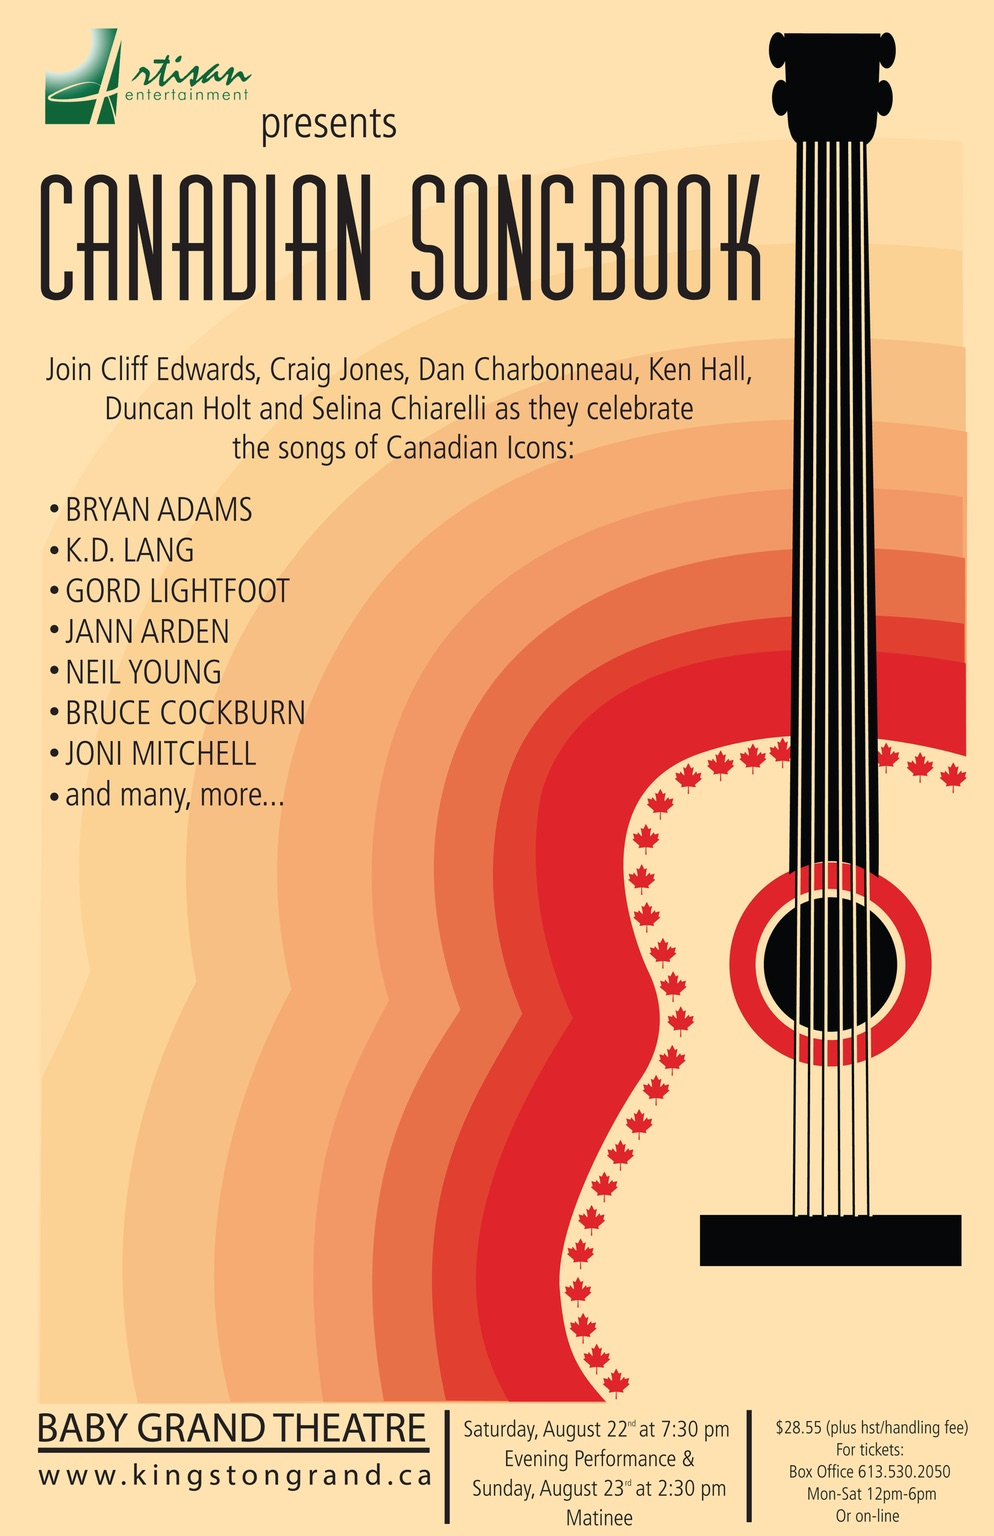 Canadian Songbook - Aug 22 and 23 at the Baby Grand!